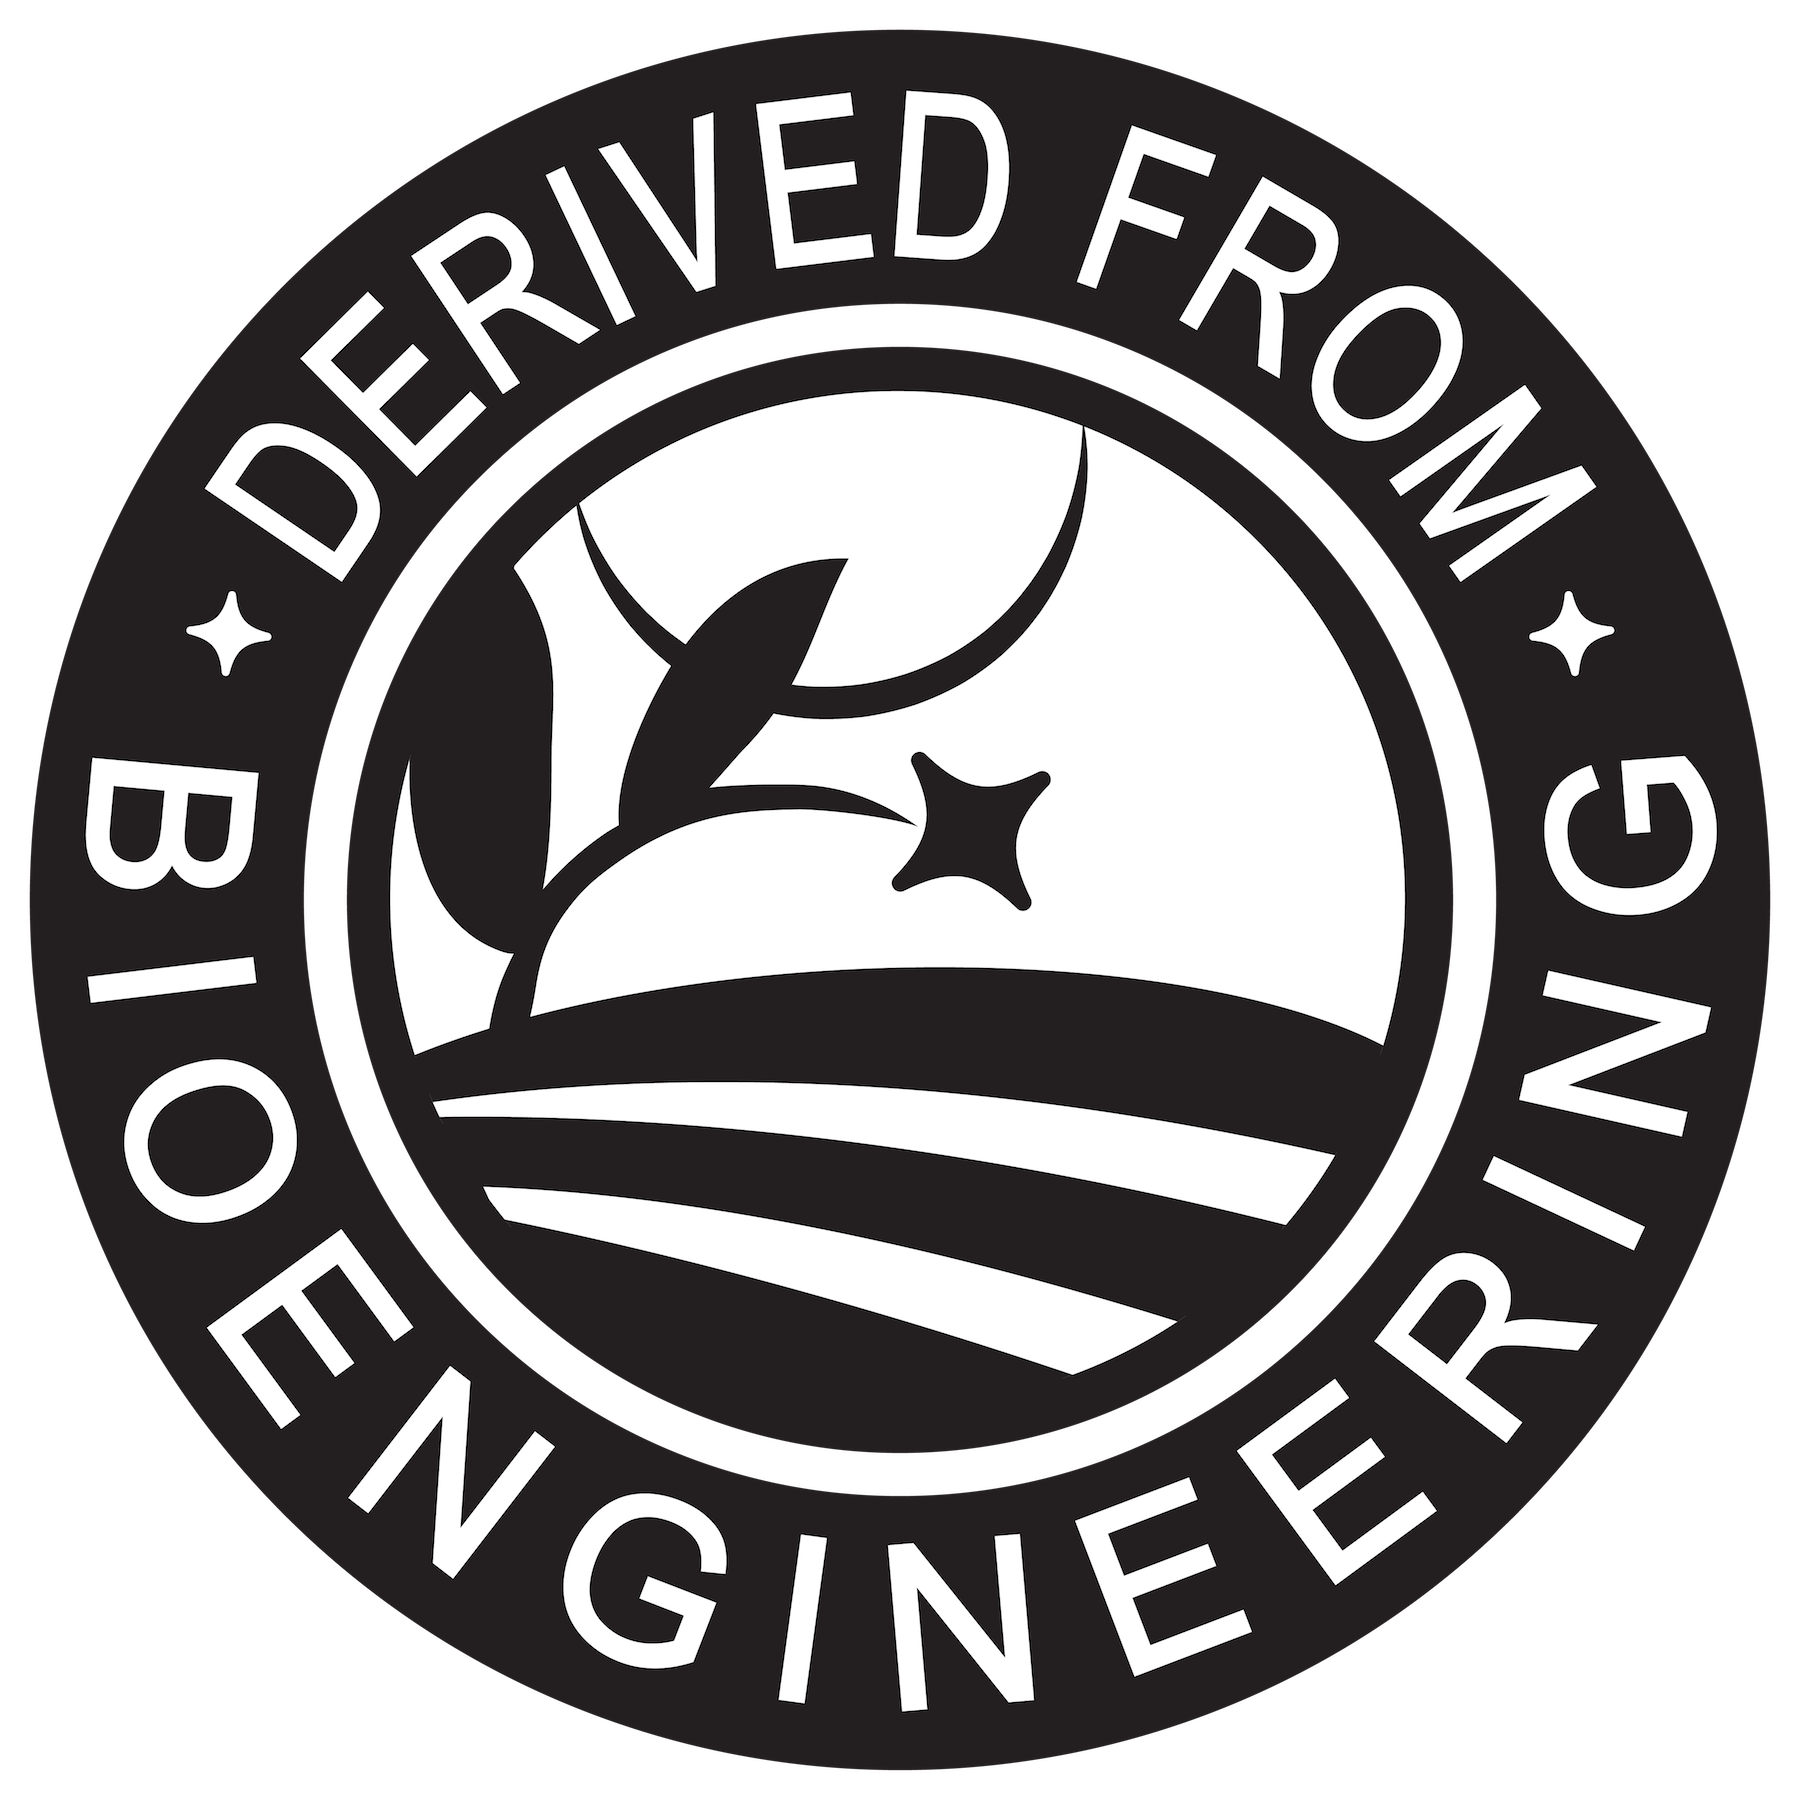 Derived from BW bioengineering label